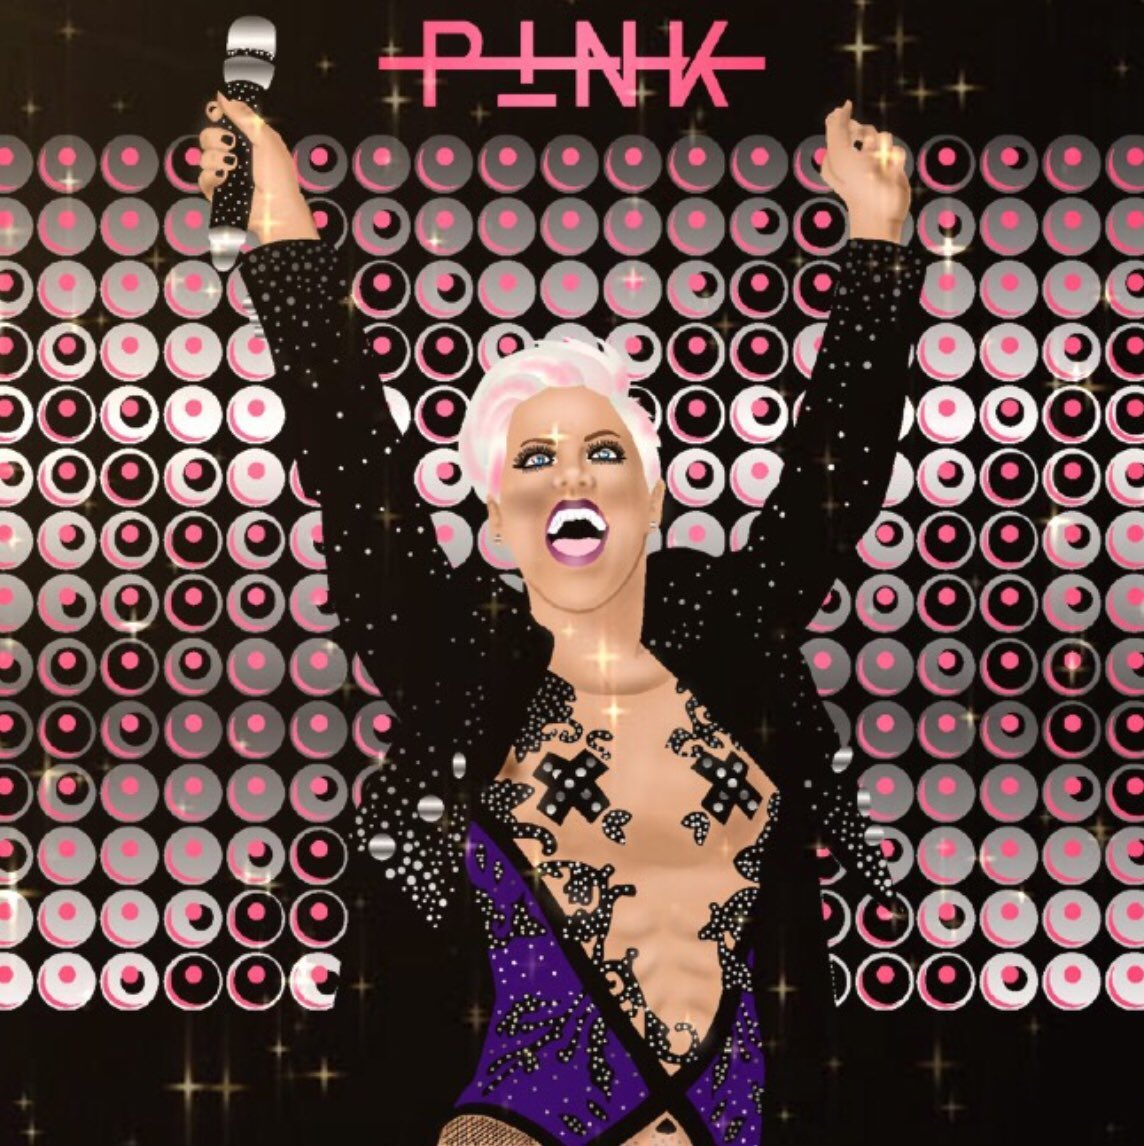 Thanks to all of you who participated in our special #PinkXct challenge.Try coloring @Pink's amazing book 'P!nk - Hurts 2B Human' book and visit  http://bit.ly/PINKxCT to make sure you don't miss out on her album release! @RCARecords Coloring masterpiece done by @ct4_karen